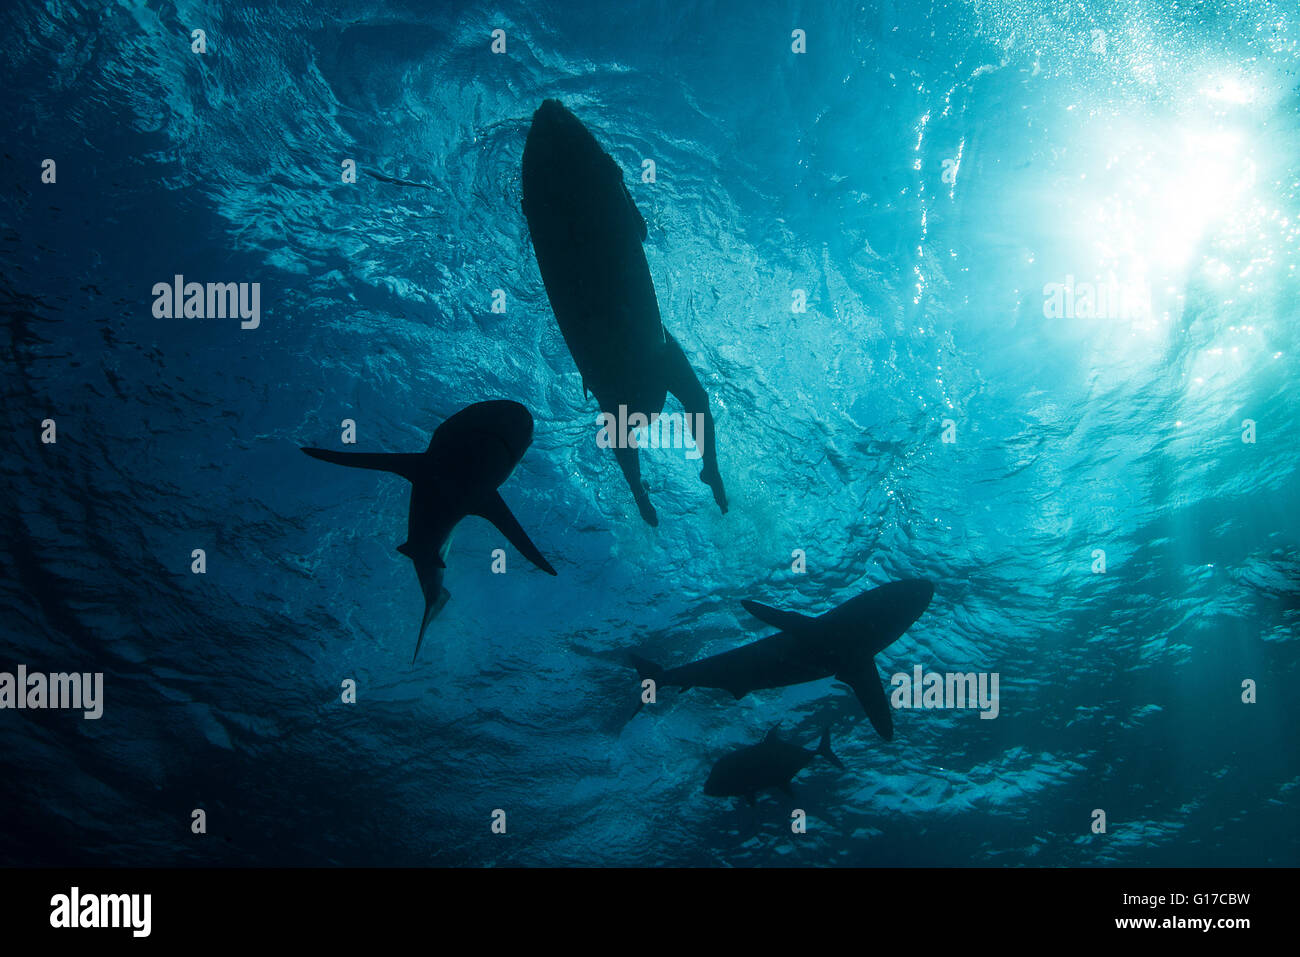 Low angle underwater view of surfer on surfboard with sharks, Colima, Mexico - Stock Image